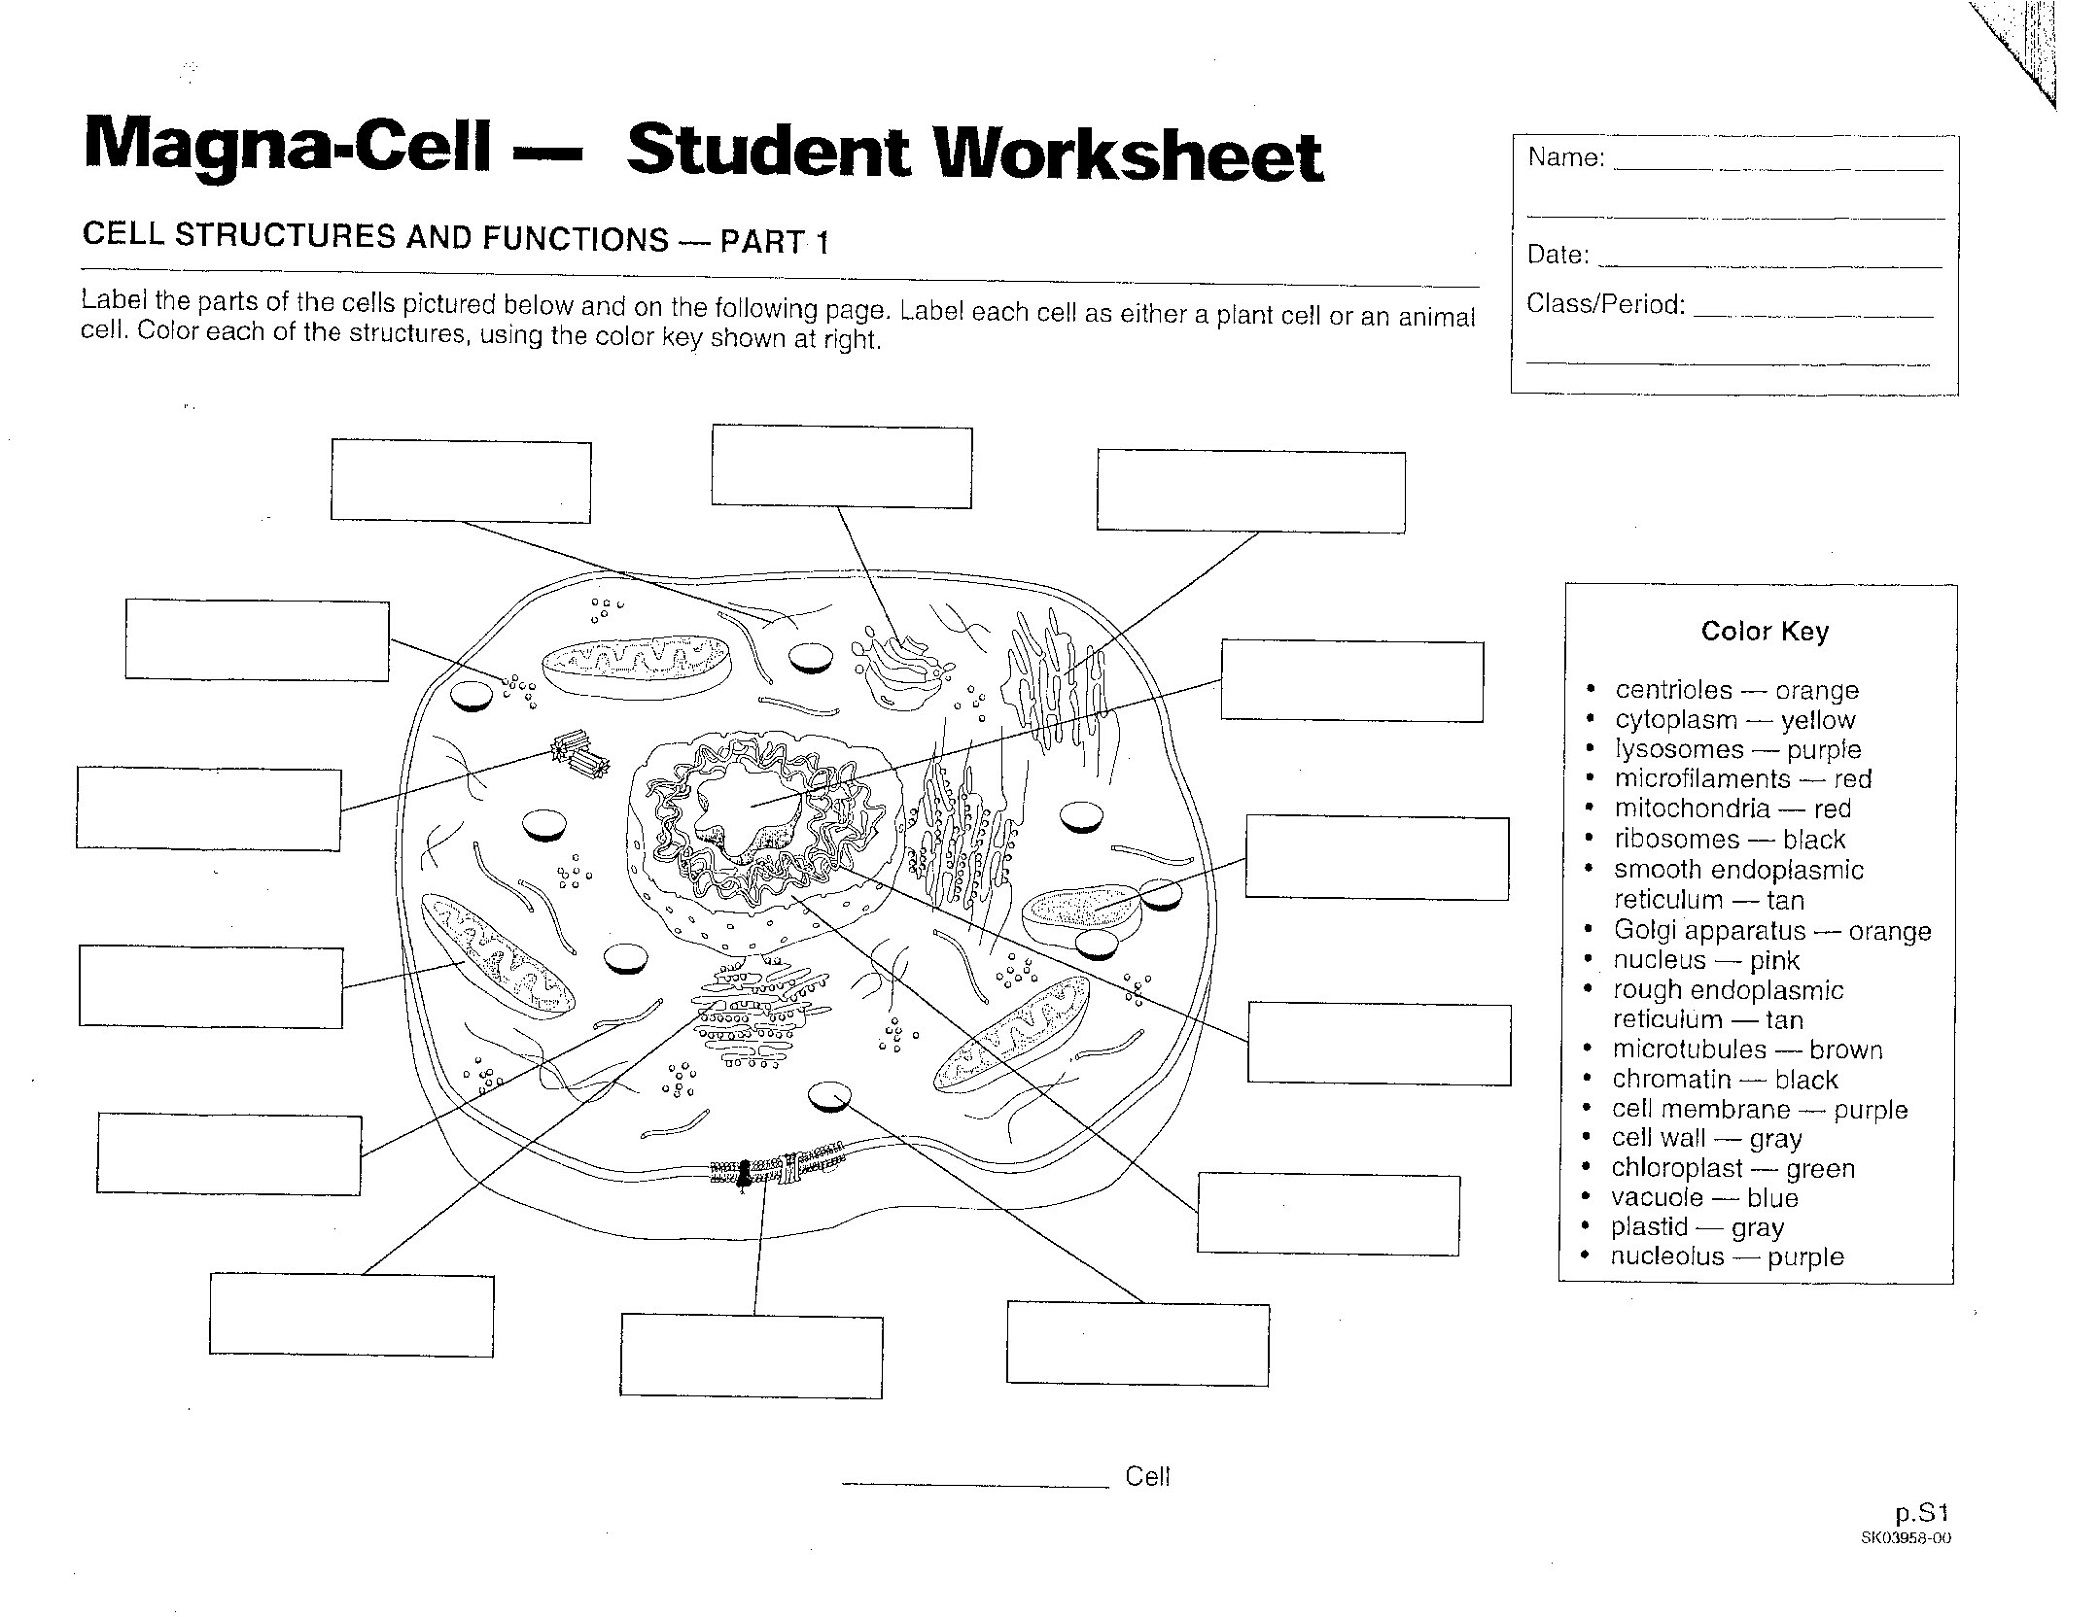 plant and animal cell diagram worksheet printable diagram plant and animal cell diagram worksheet printable diagram [ 2100 x 1617 Pixel ]